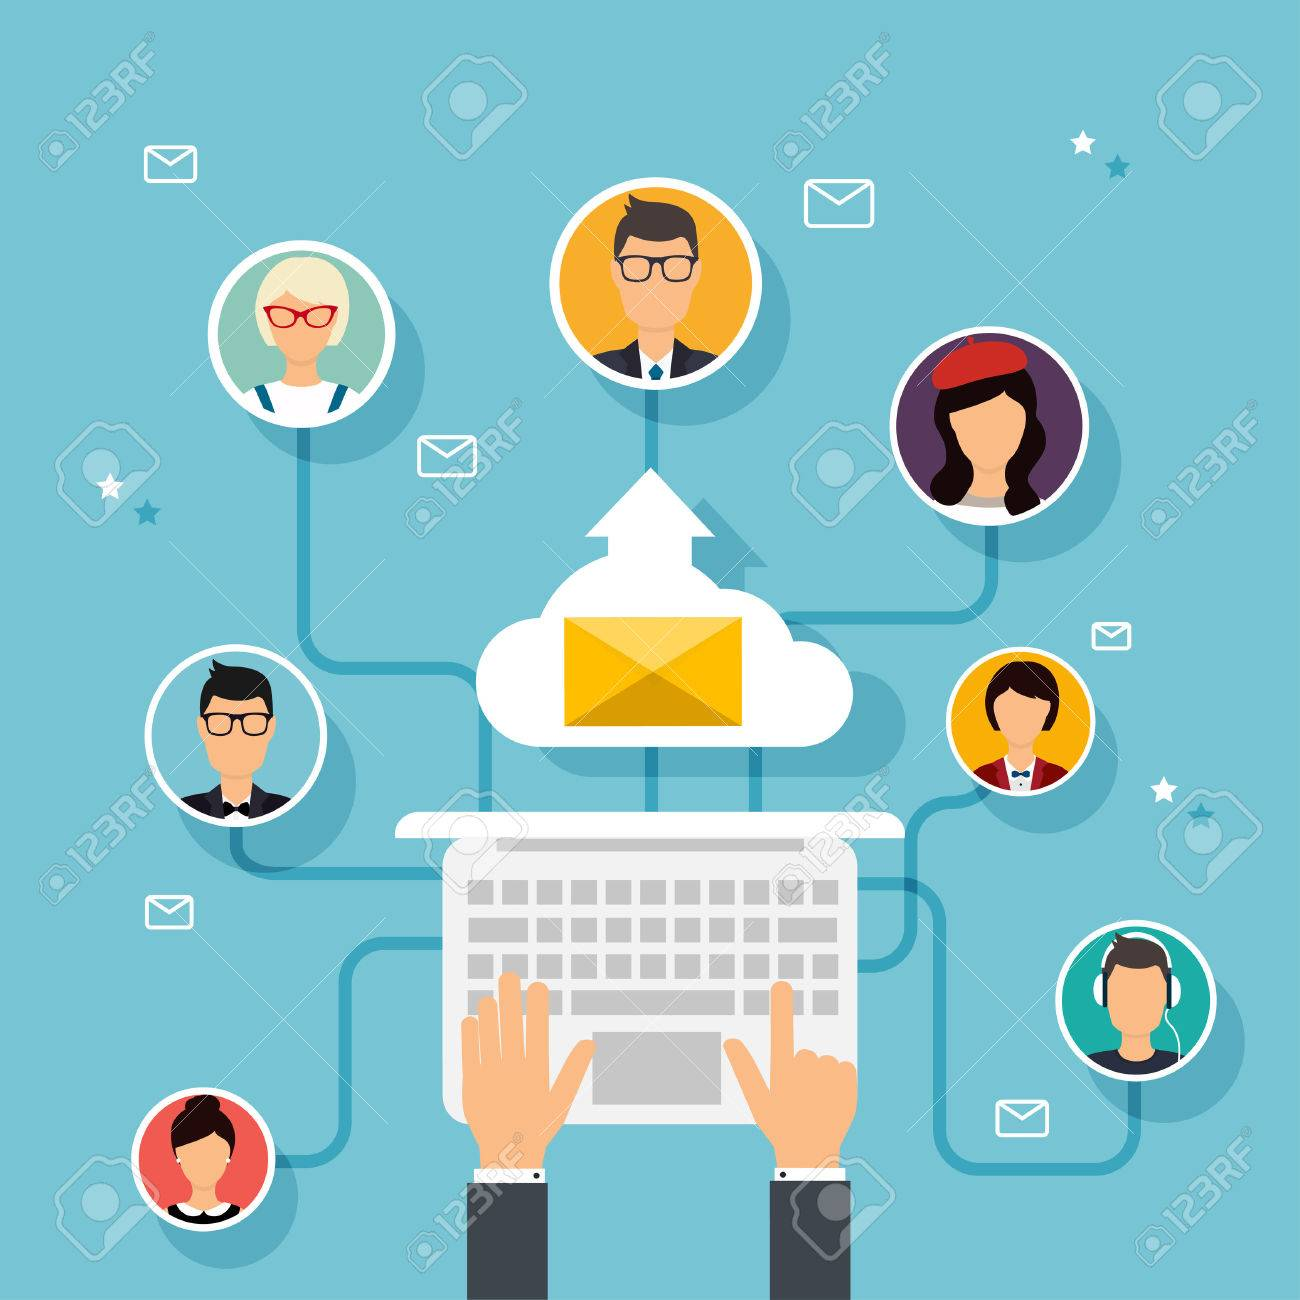 Running campaign, email advertising, direct digital marketing. Email marketing. Set of people avatars and icons. Flat design style modern vector illustration concept. - 51019285